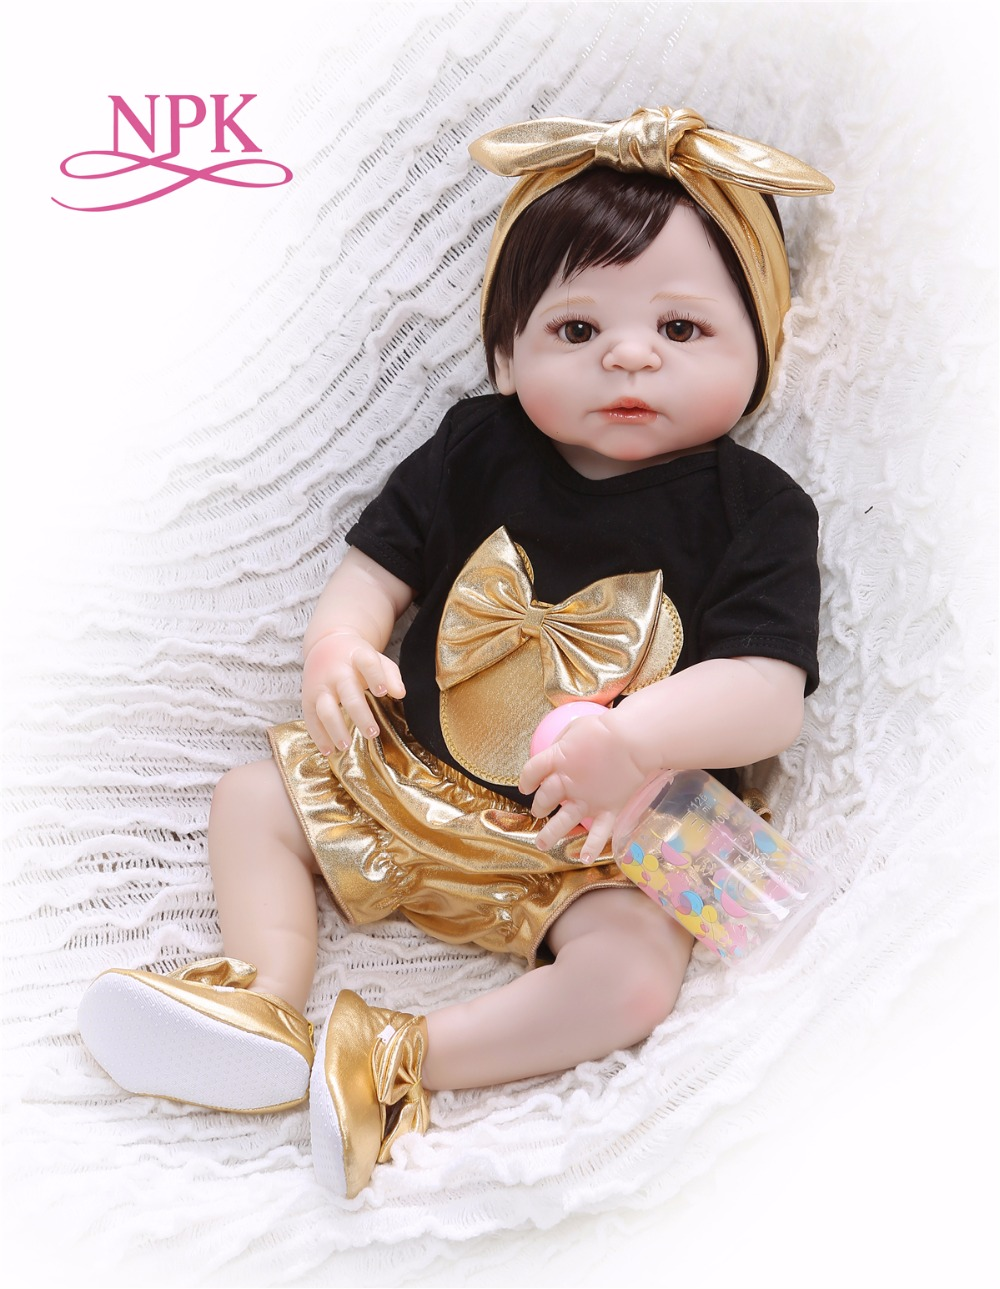 NPK 56cm Silicone Full Body bebe Doll reborn baby Real Life golden Princess Baby Doll For